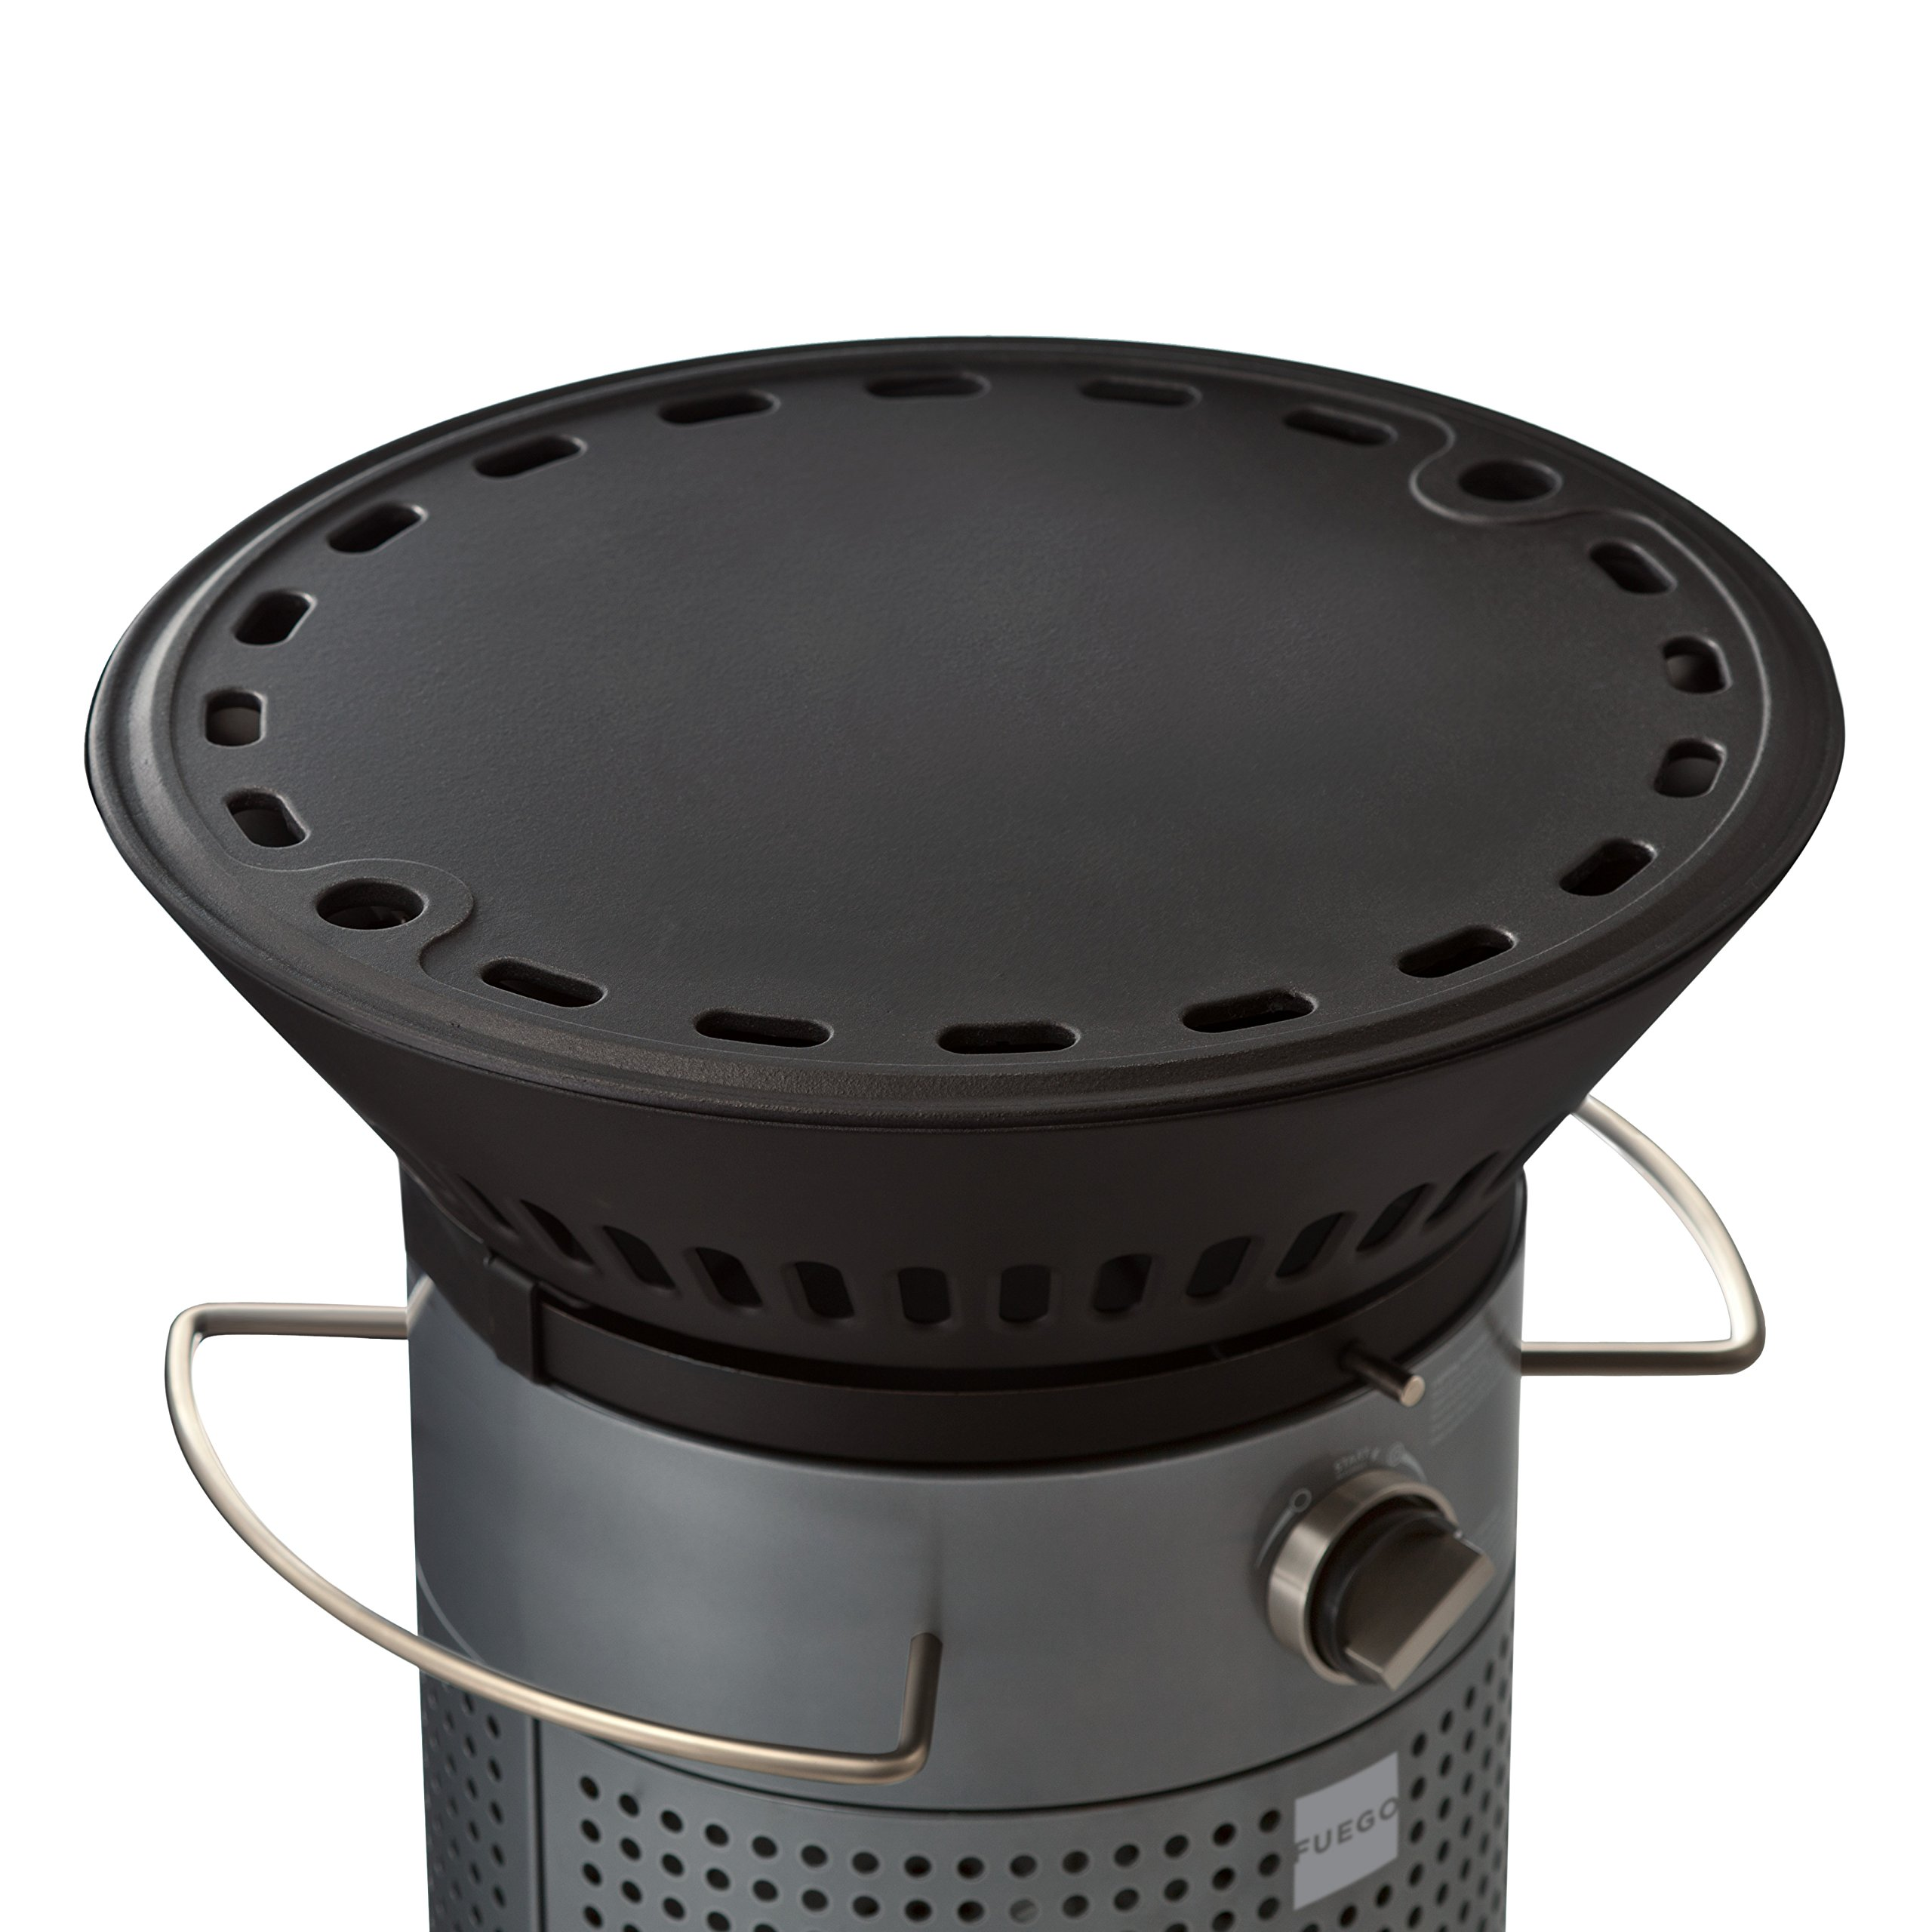 Fuego FEAGP1 Element Griddle Plate